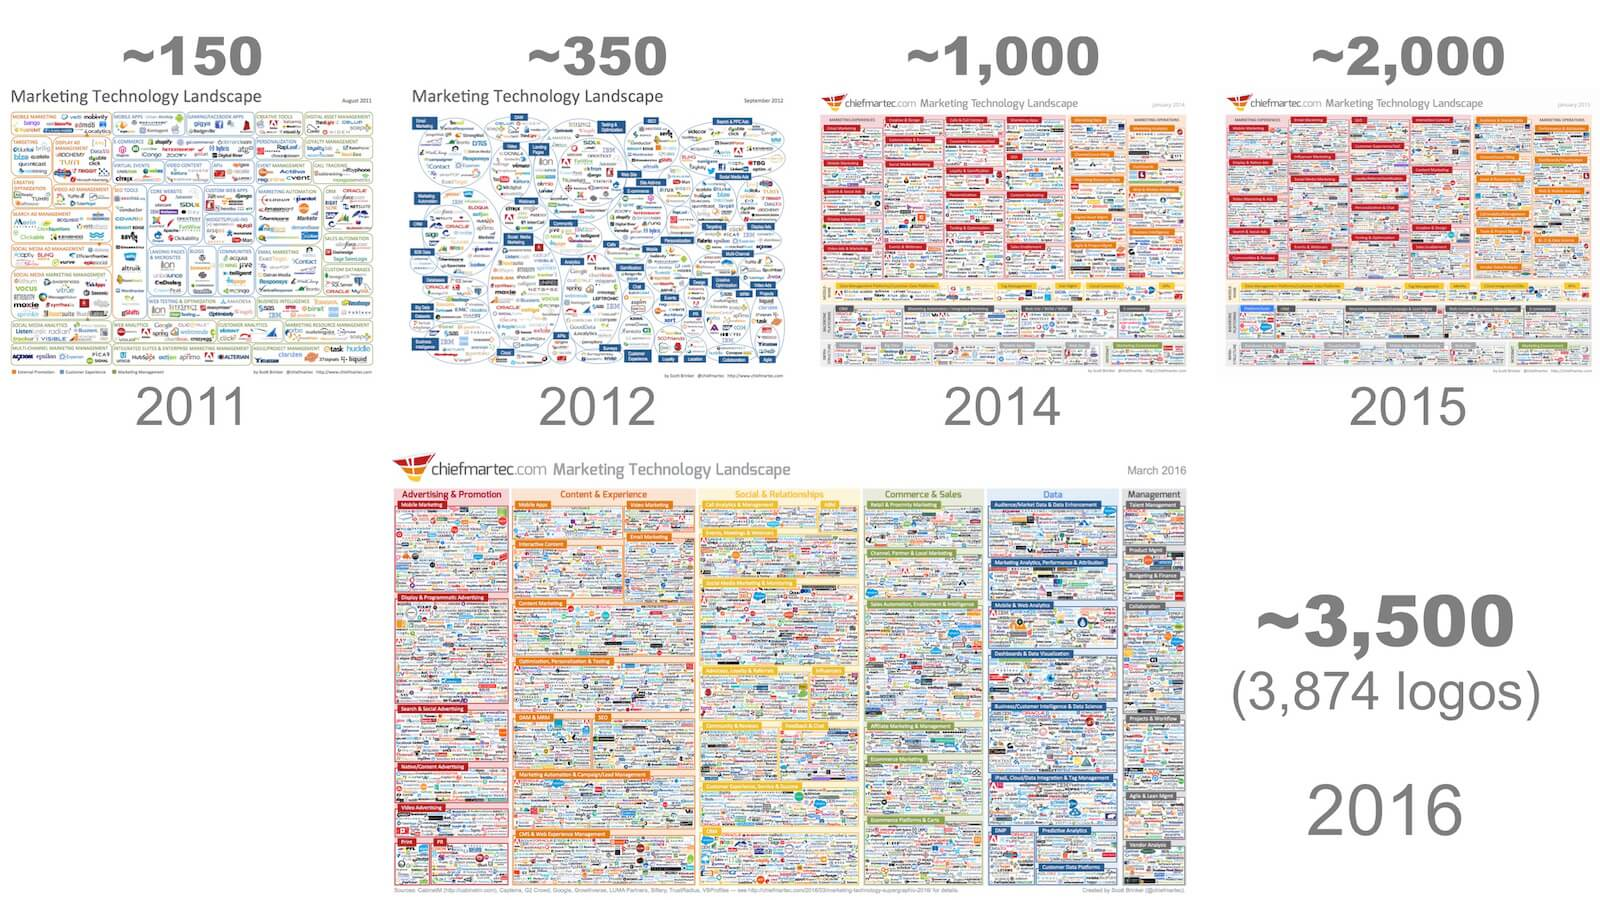 Marketing Technology Landscape Timeline 2011-2016